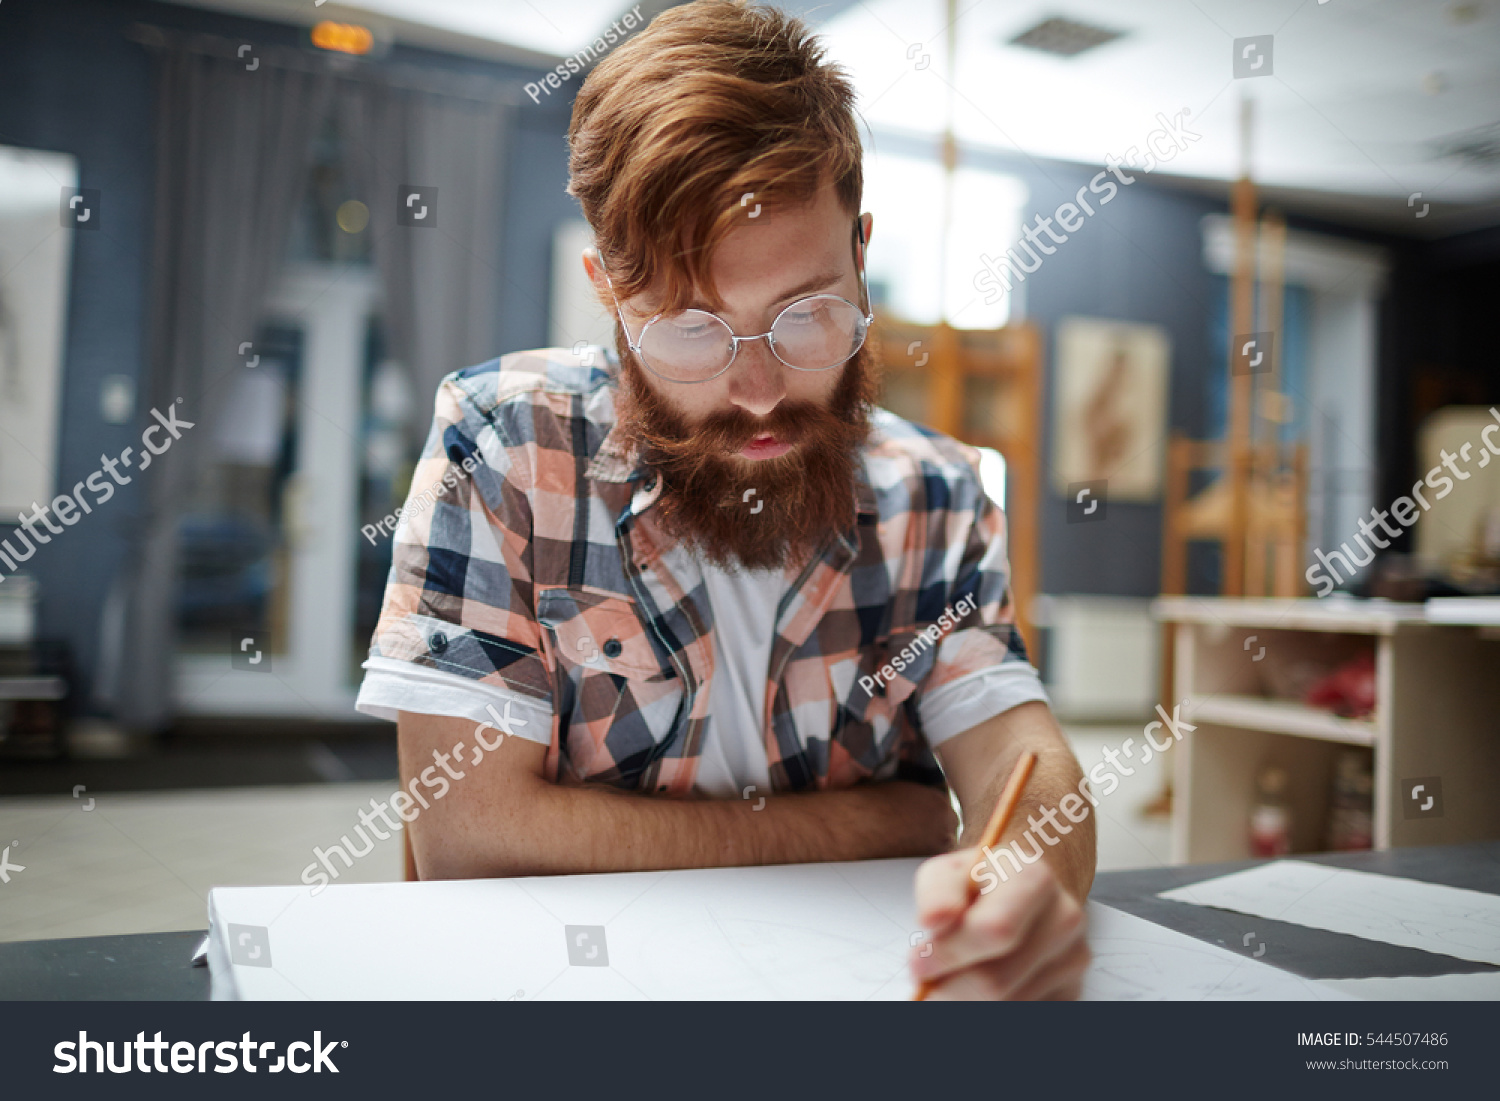 Sketching Lesson Stock Photo 544507486 - Shutterstock